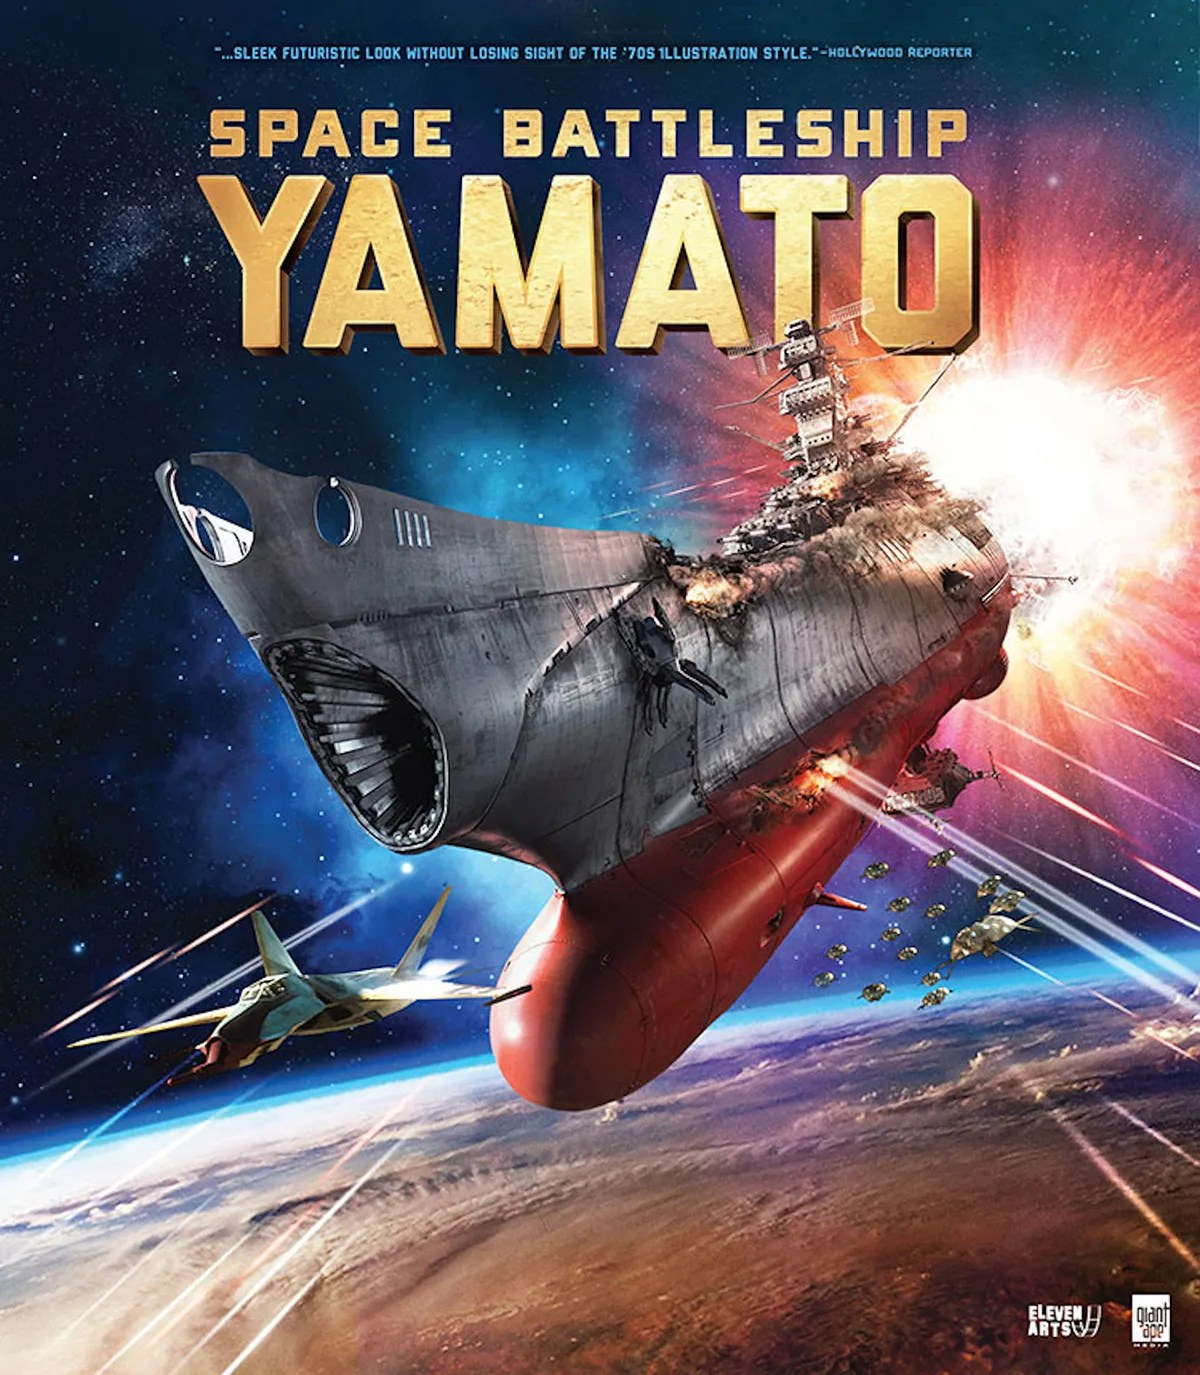 Space Battleship Yamato live action bluray cover